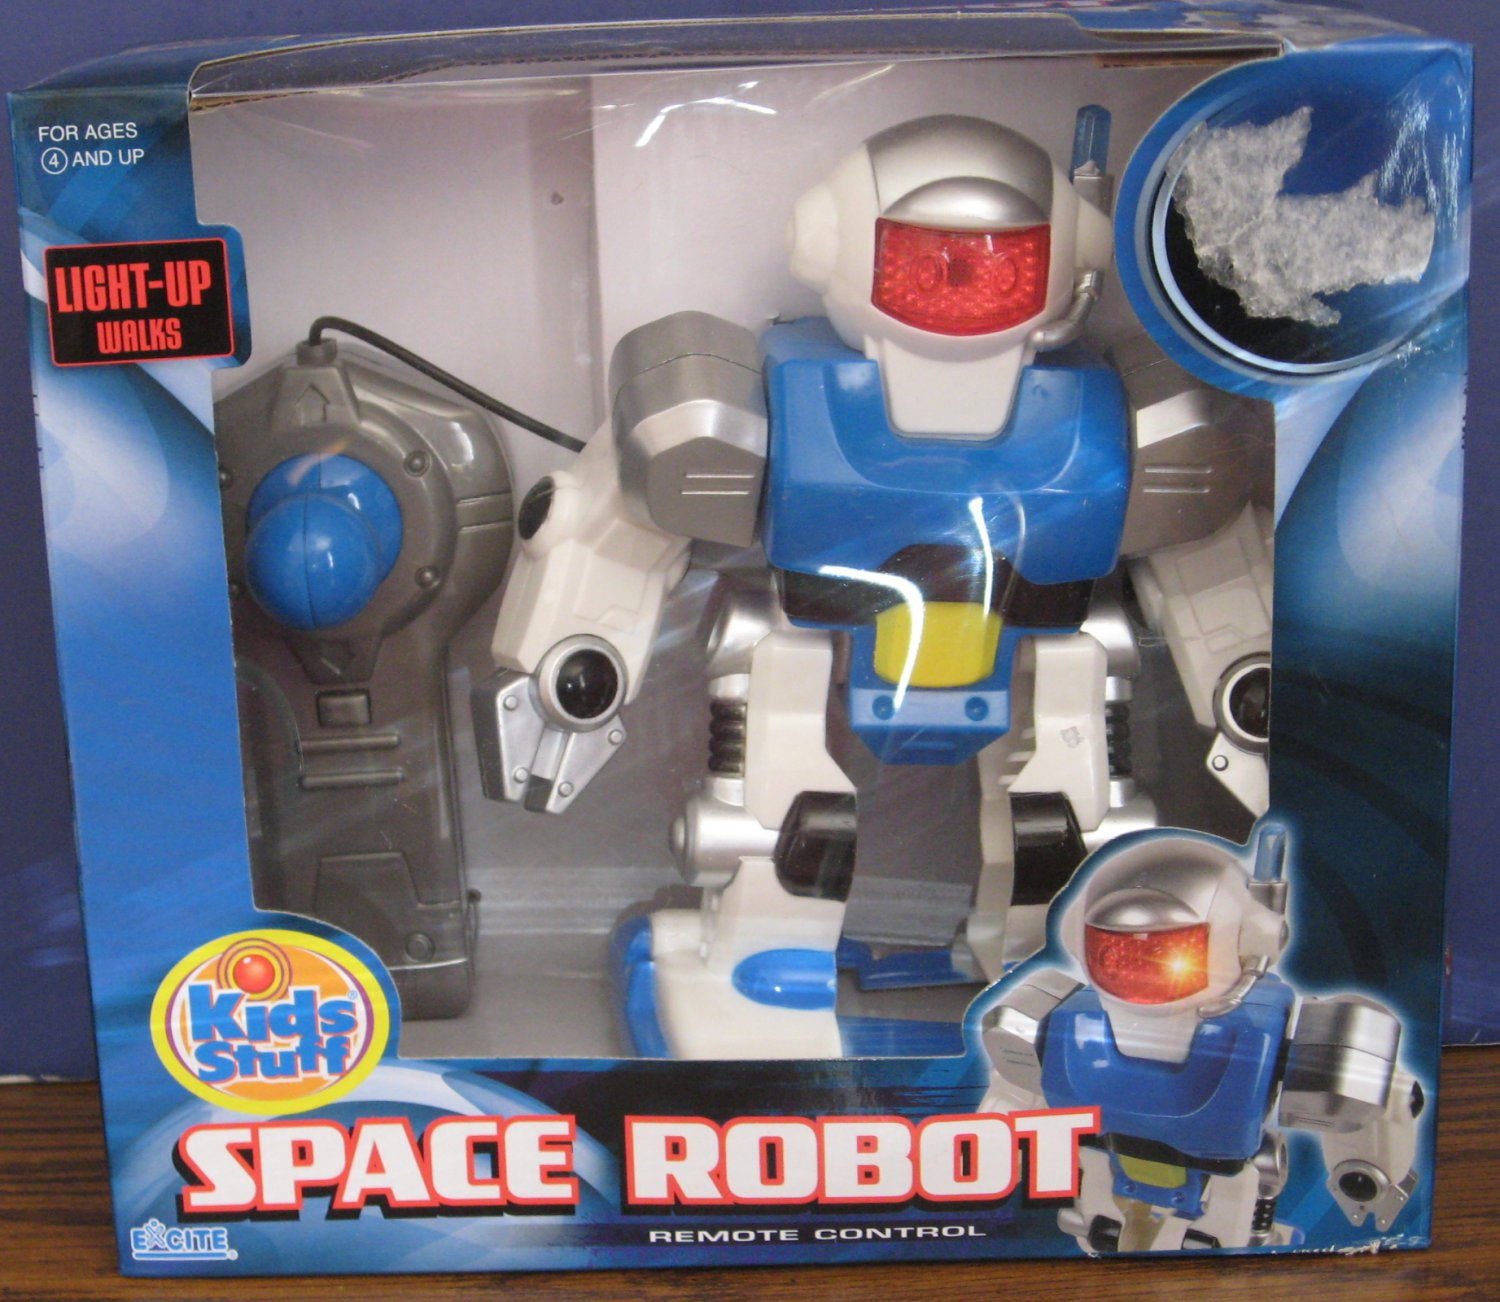 Kids Stuff Remote Control Light Up Walking Space Robot - Excite Toys